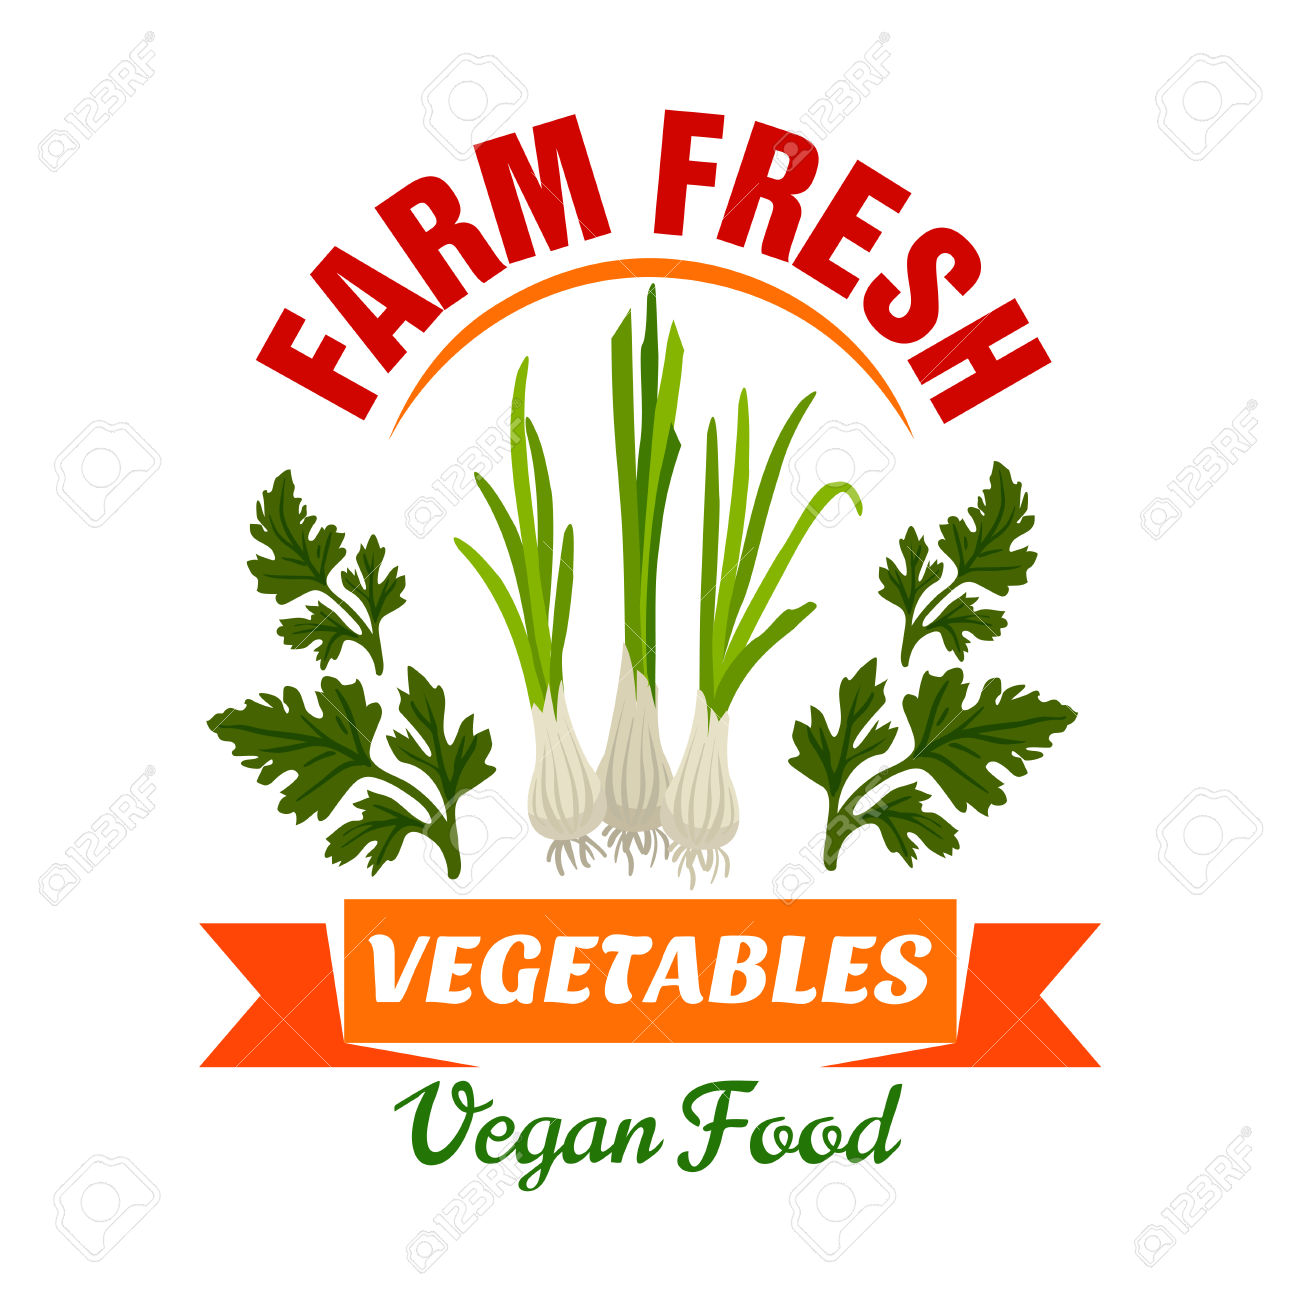 Onion, Leek, Welsh Onion. Farm Fresh Vegetable Product Emblem.